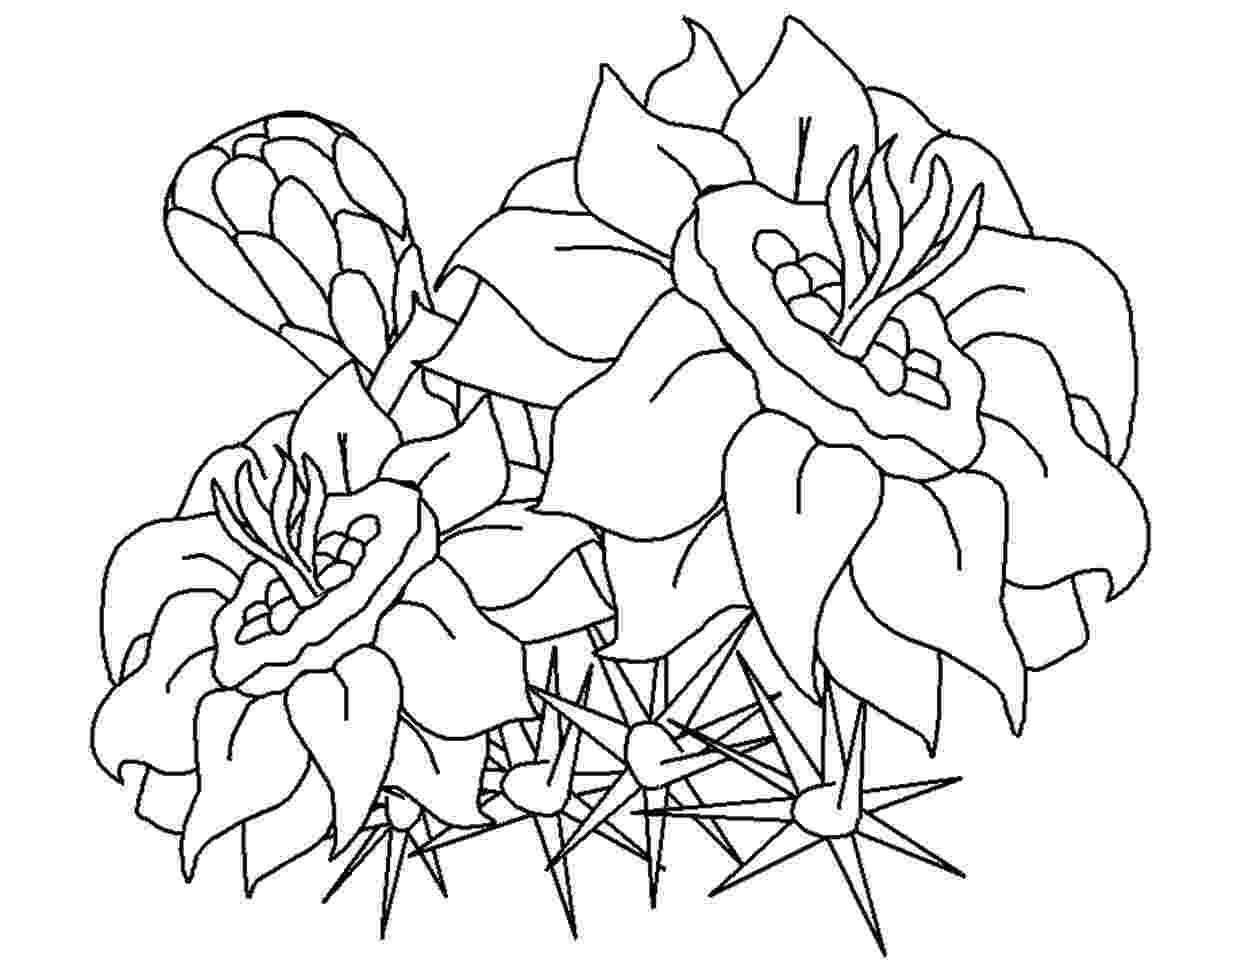 flower printable pictures free printable flower coloring pages for kids best printable pictures flower 1 4